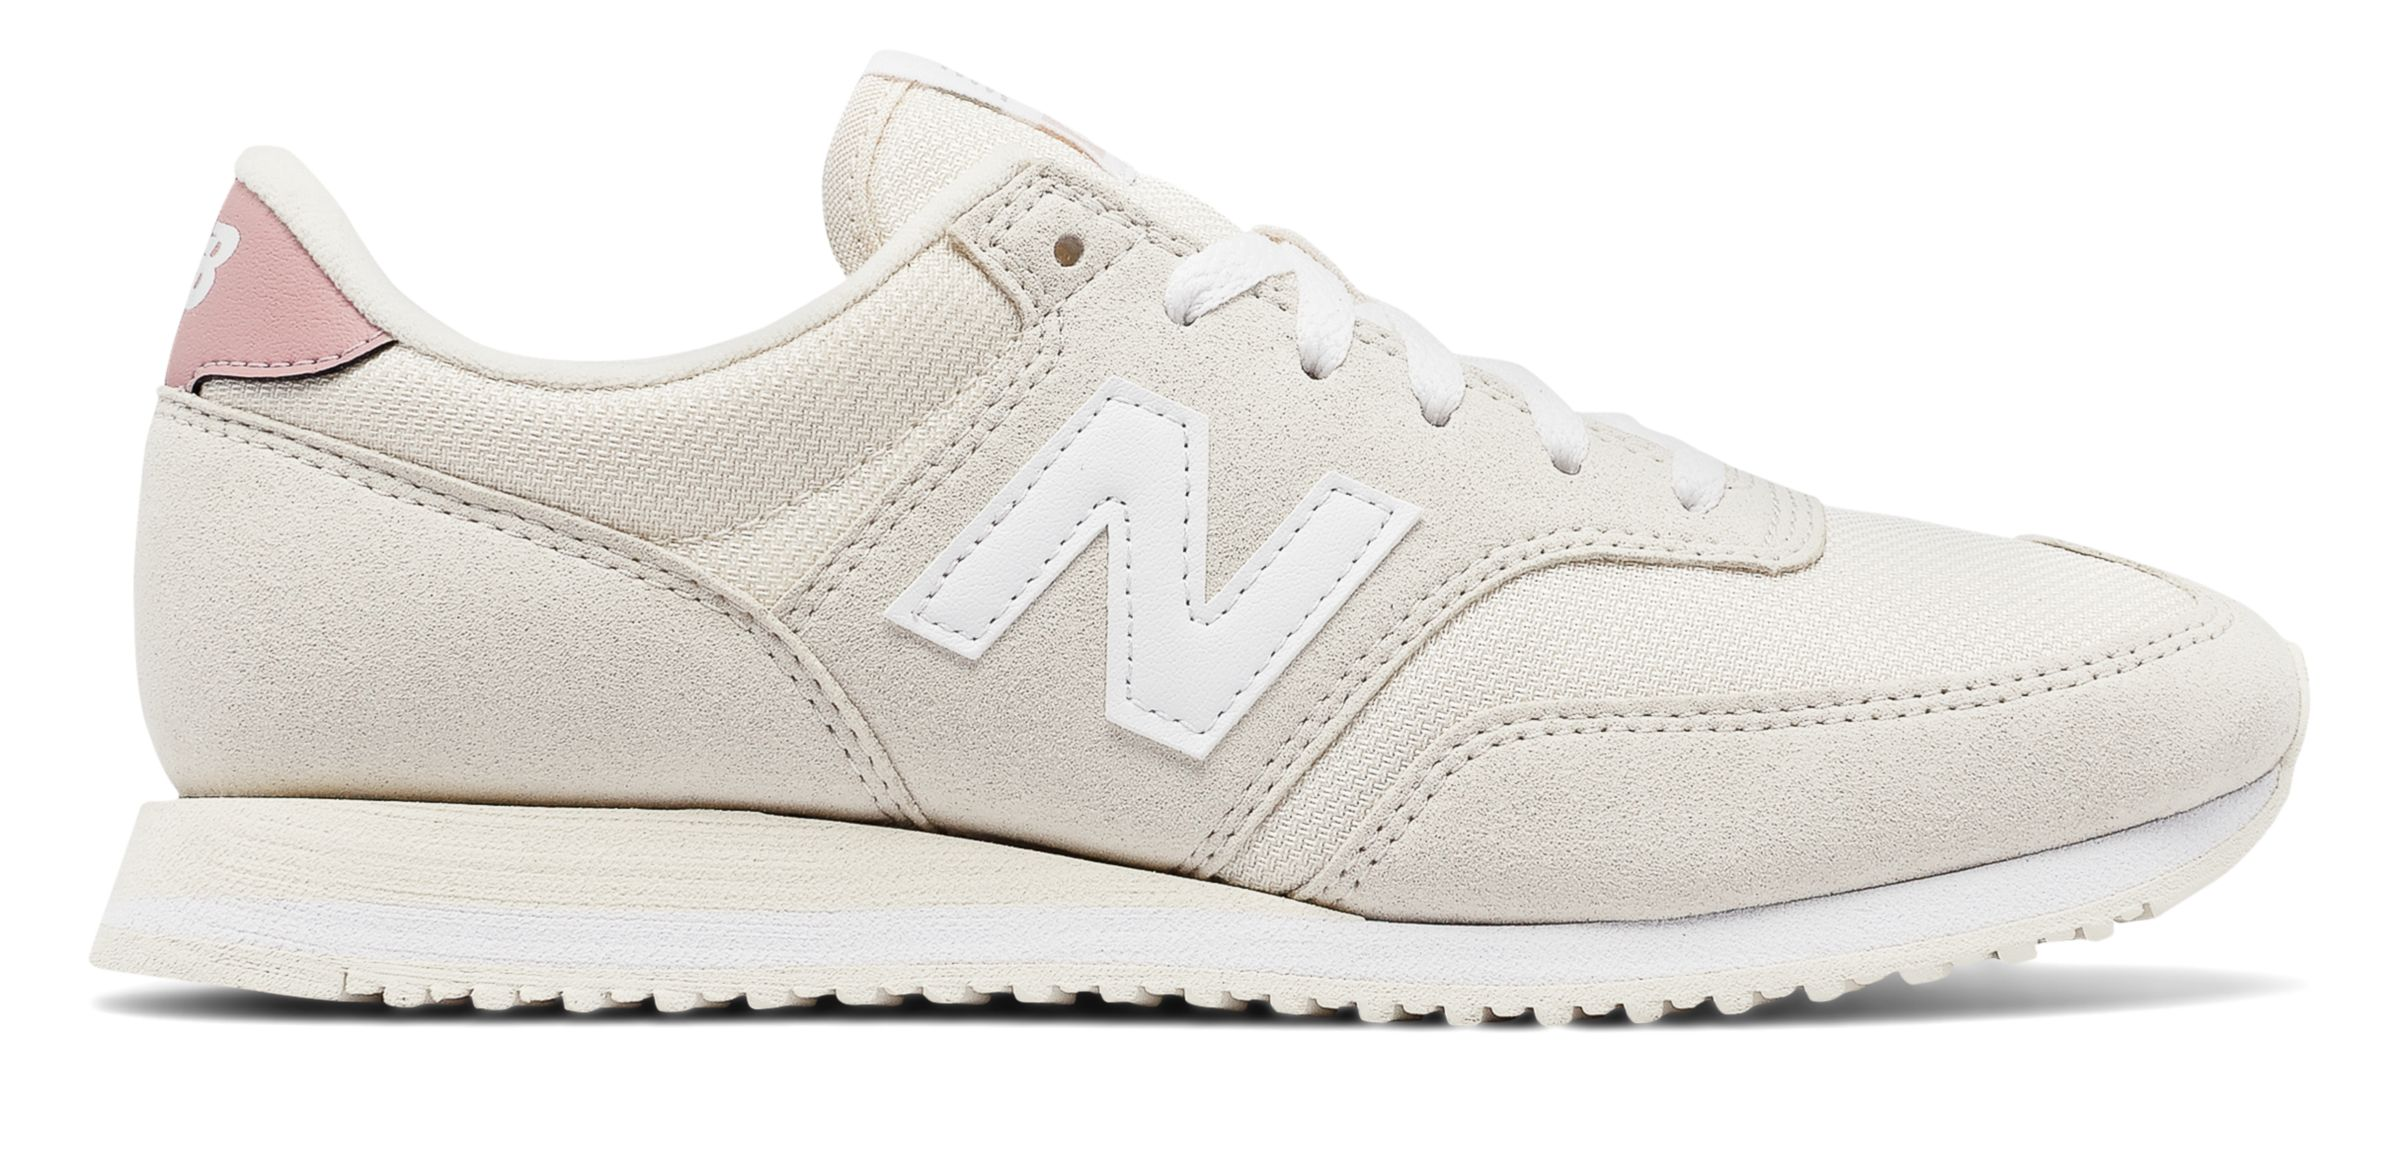 NB 620 70s Running, White Asparagus with Pink